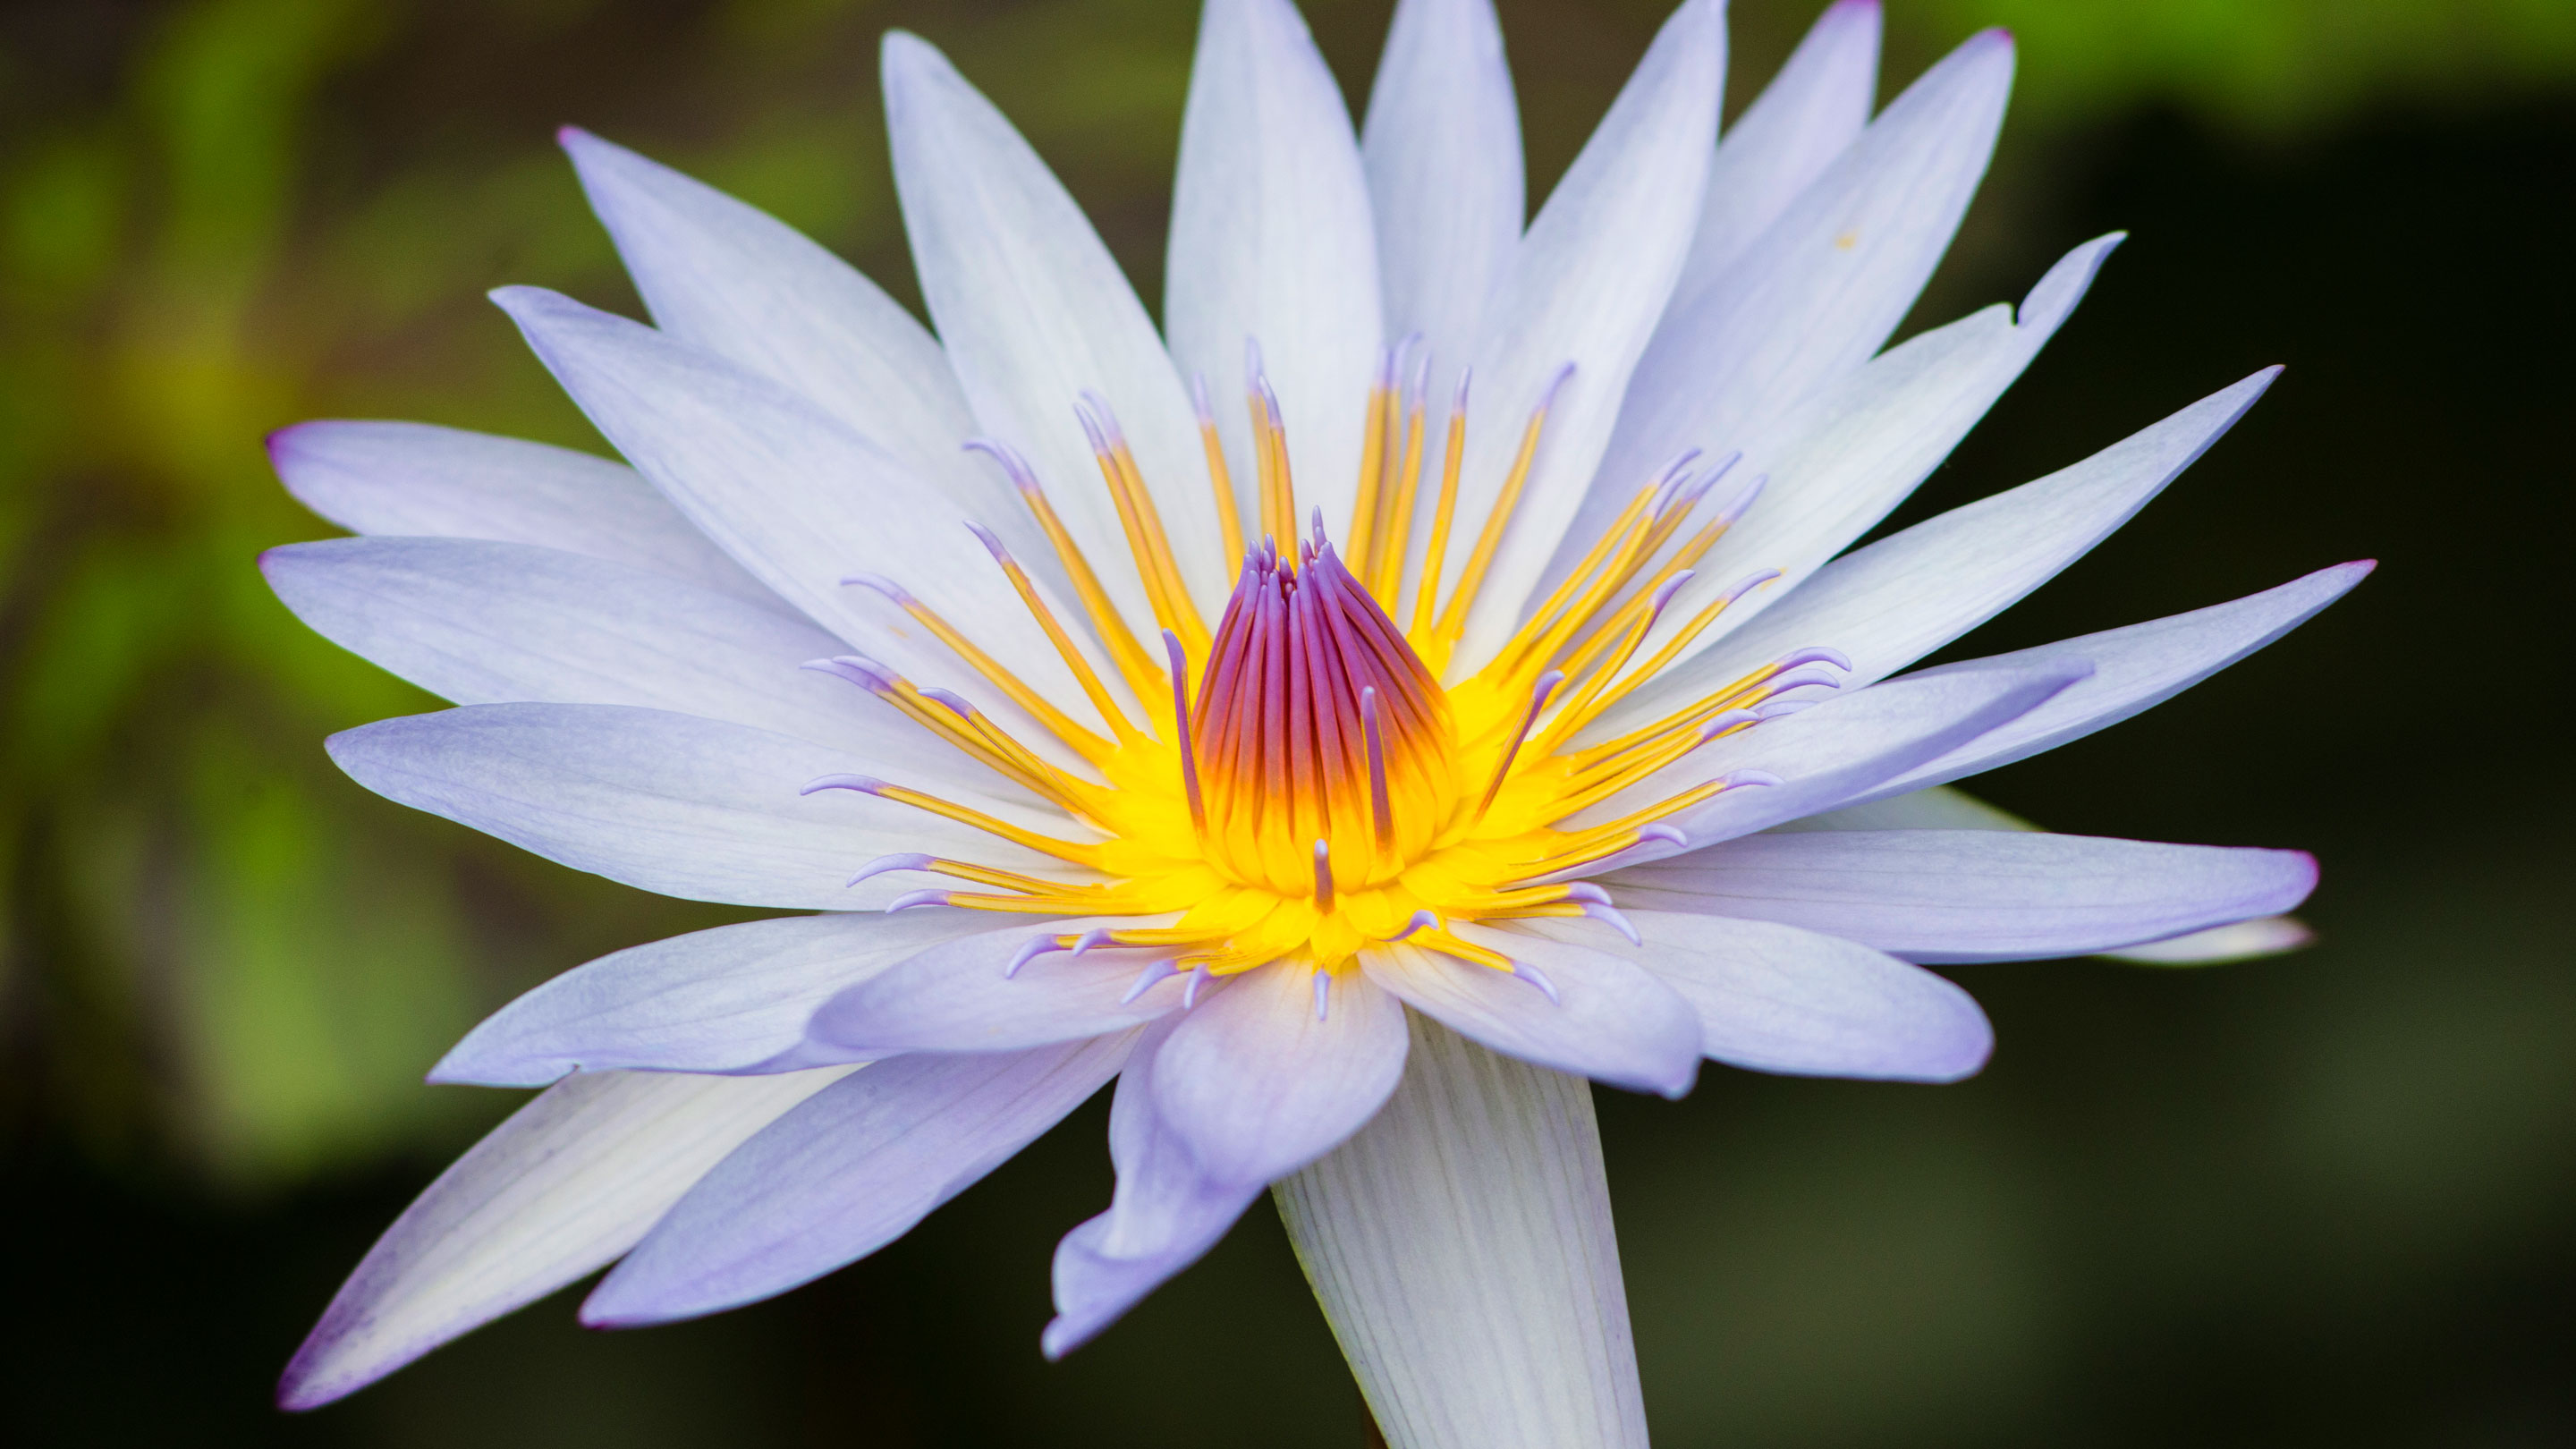 Close-up of a waterlily flower, Nymphaea 'Carlos Magdalena'